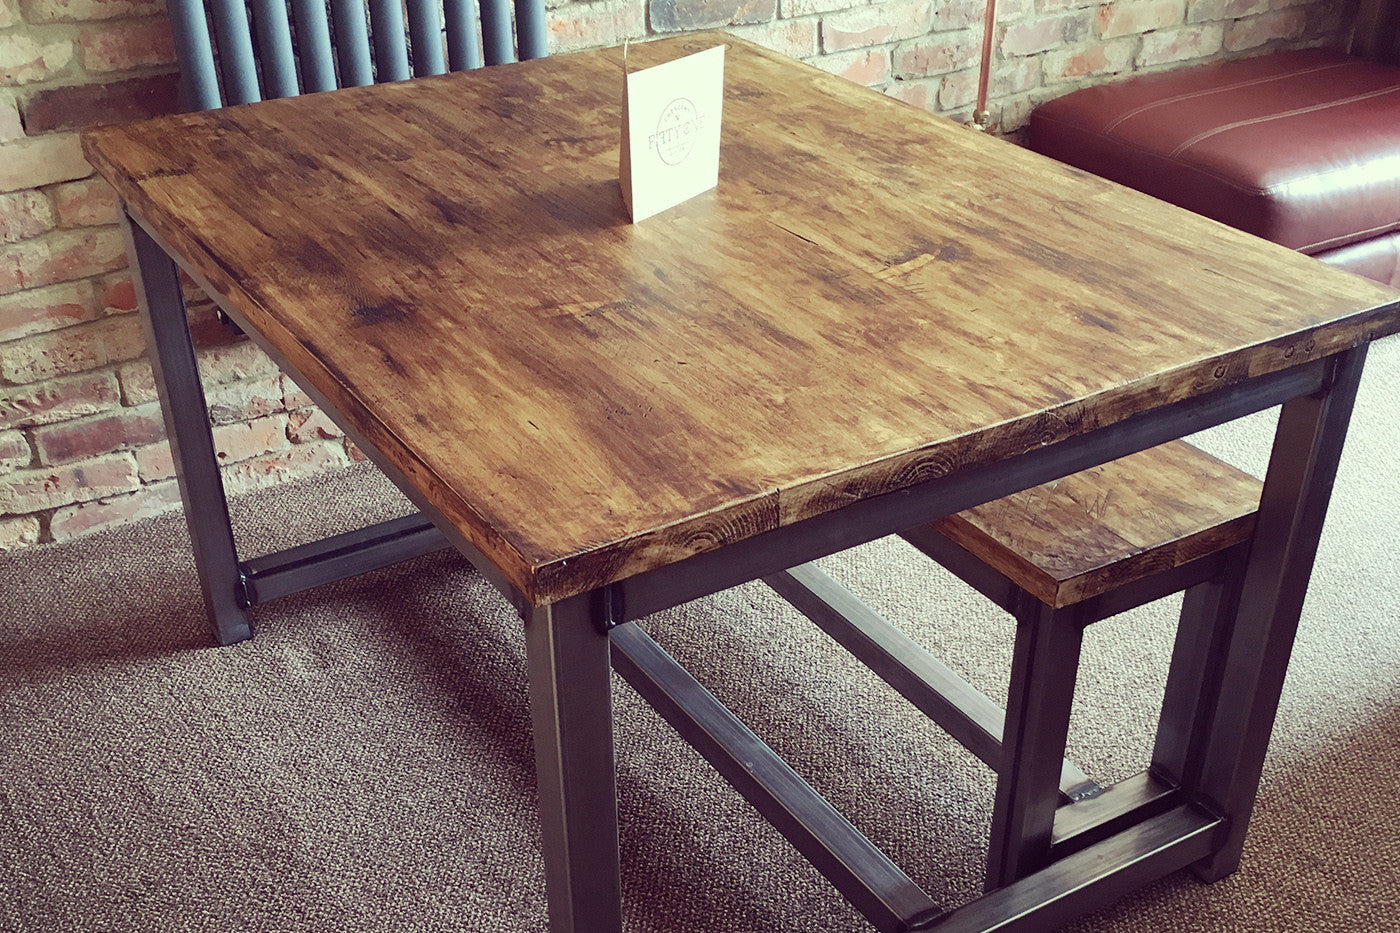 Handmade Industrial Dining Table Newcastle Upon Tyne